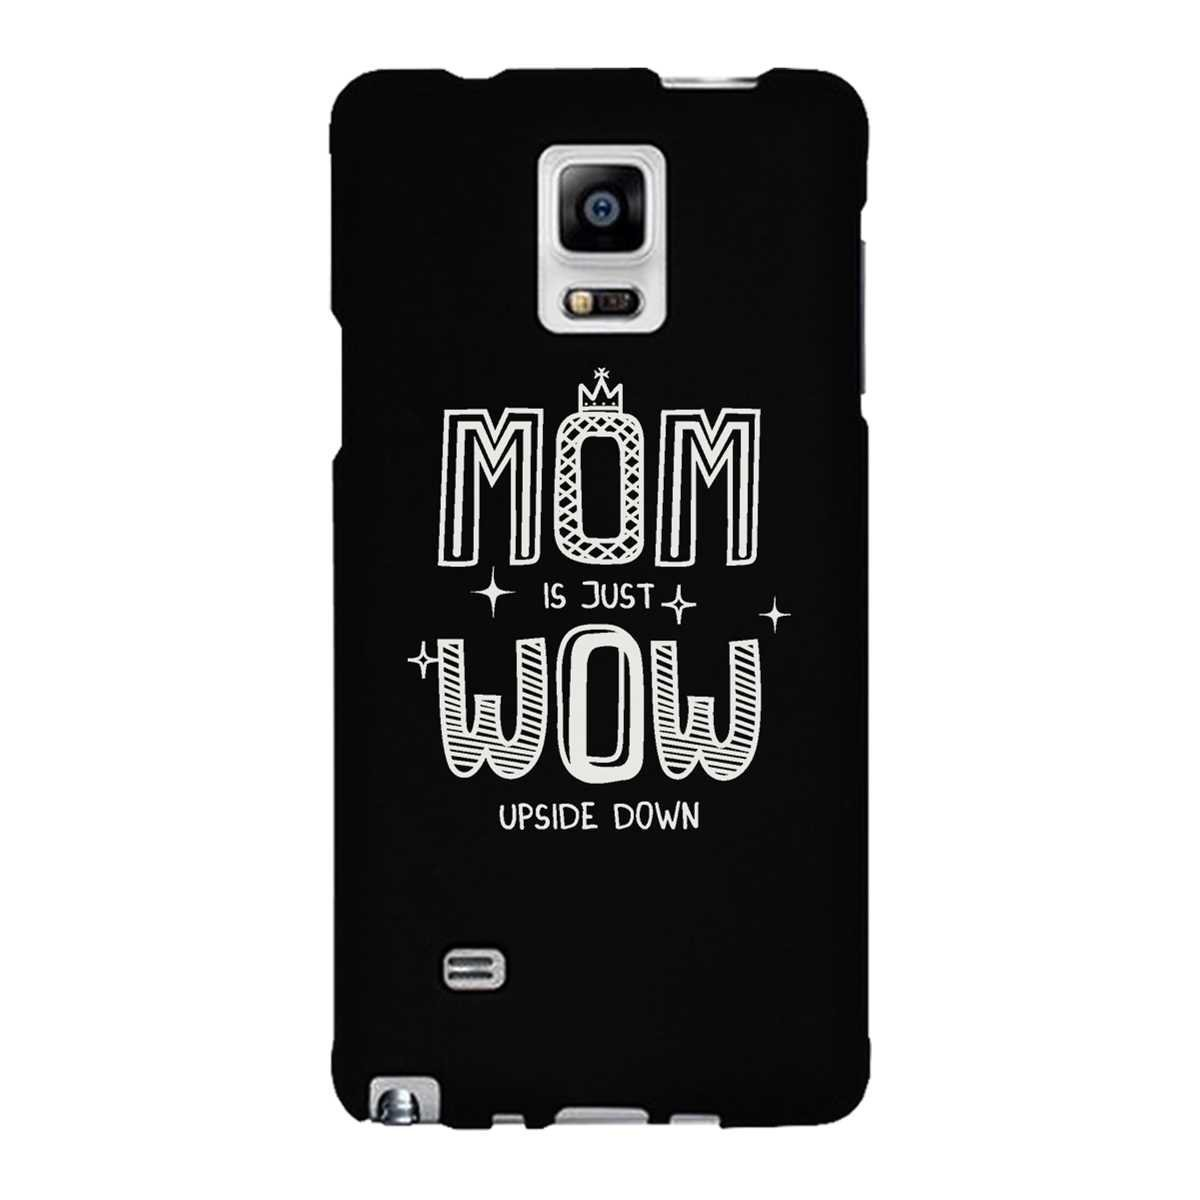 iPhone personalized cell phone cases for iphone 4 : com: MOM Is Just WOW Upside Down - Cute Phone Case for Mom - iphone 4 ...